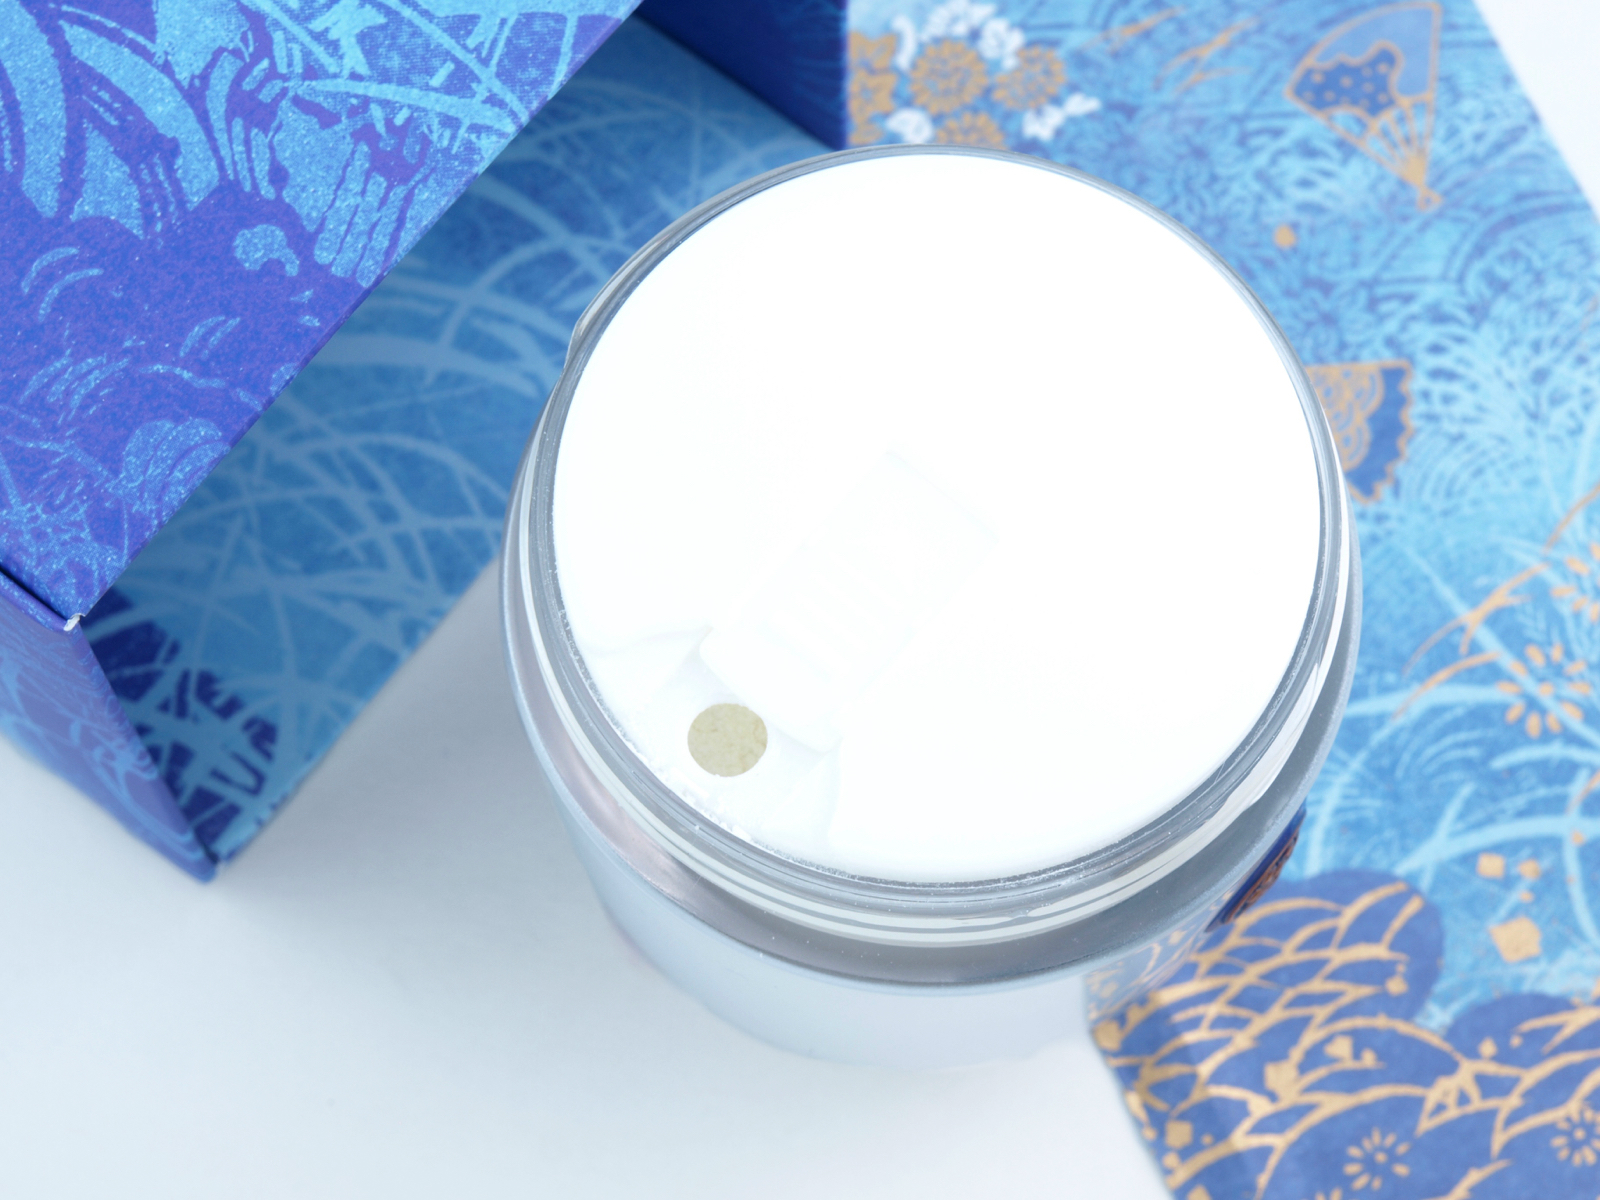 Tatcha Polished Classic Rice Enzyme Powder: Review